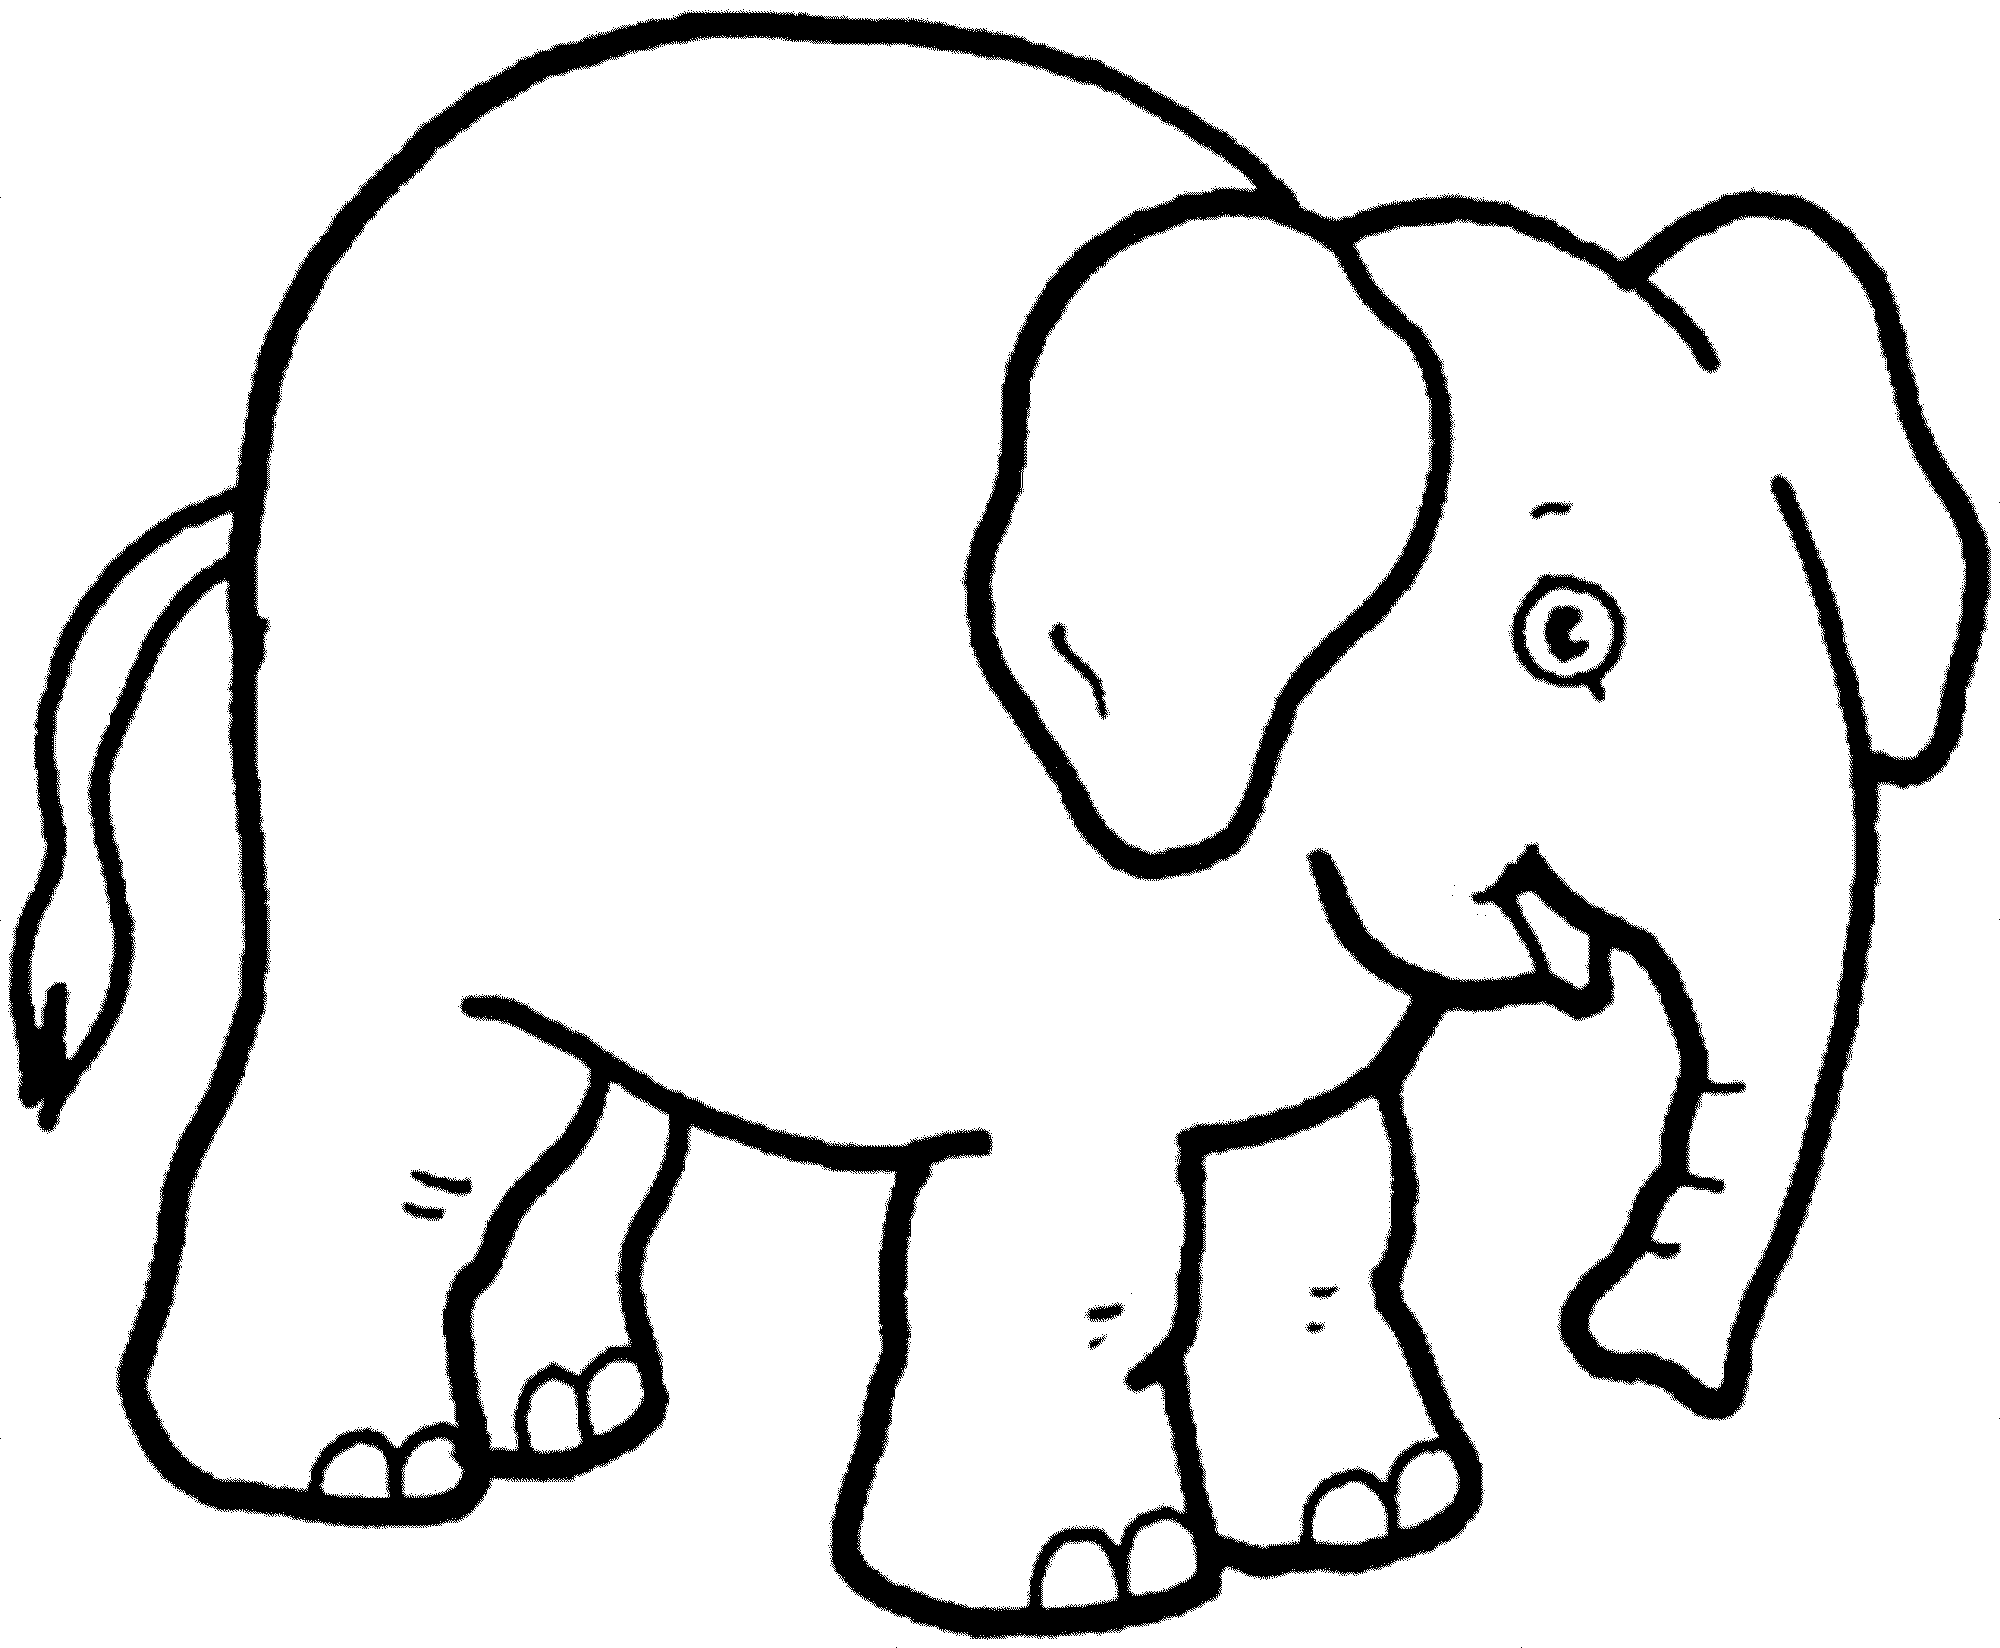 elephant picture for coloring 75 best elephants coloring book images on pinterest elephant picture for coloring